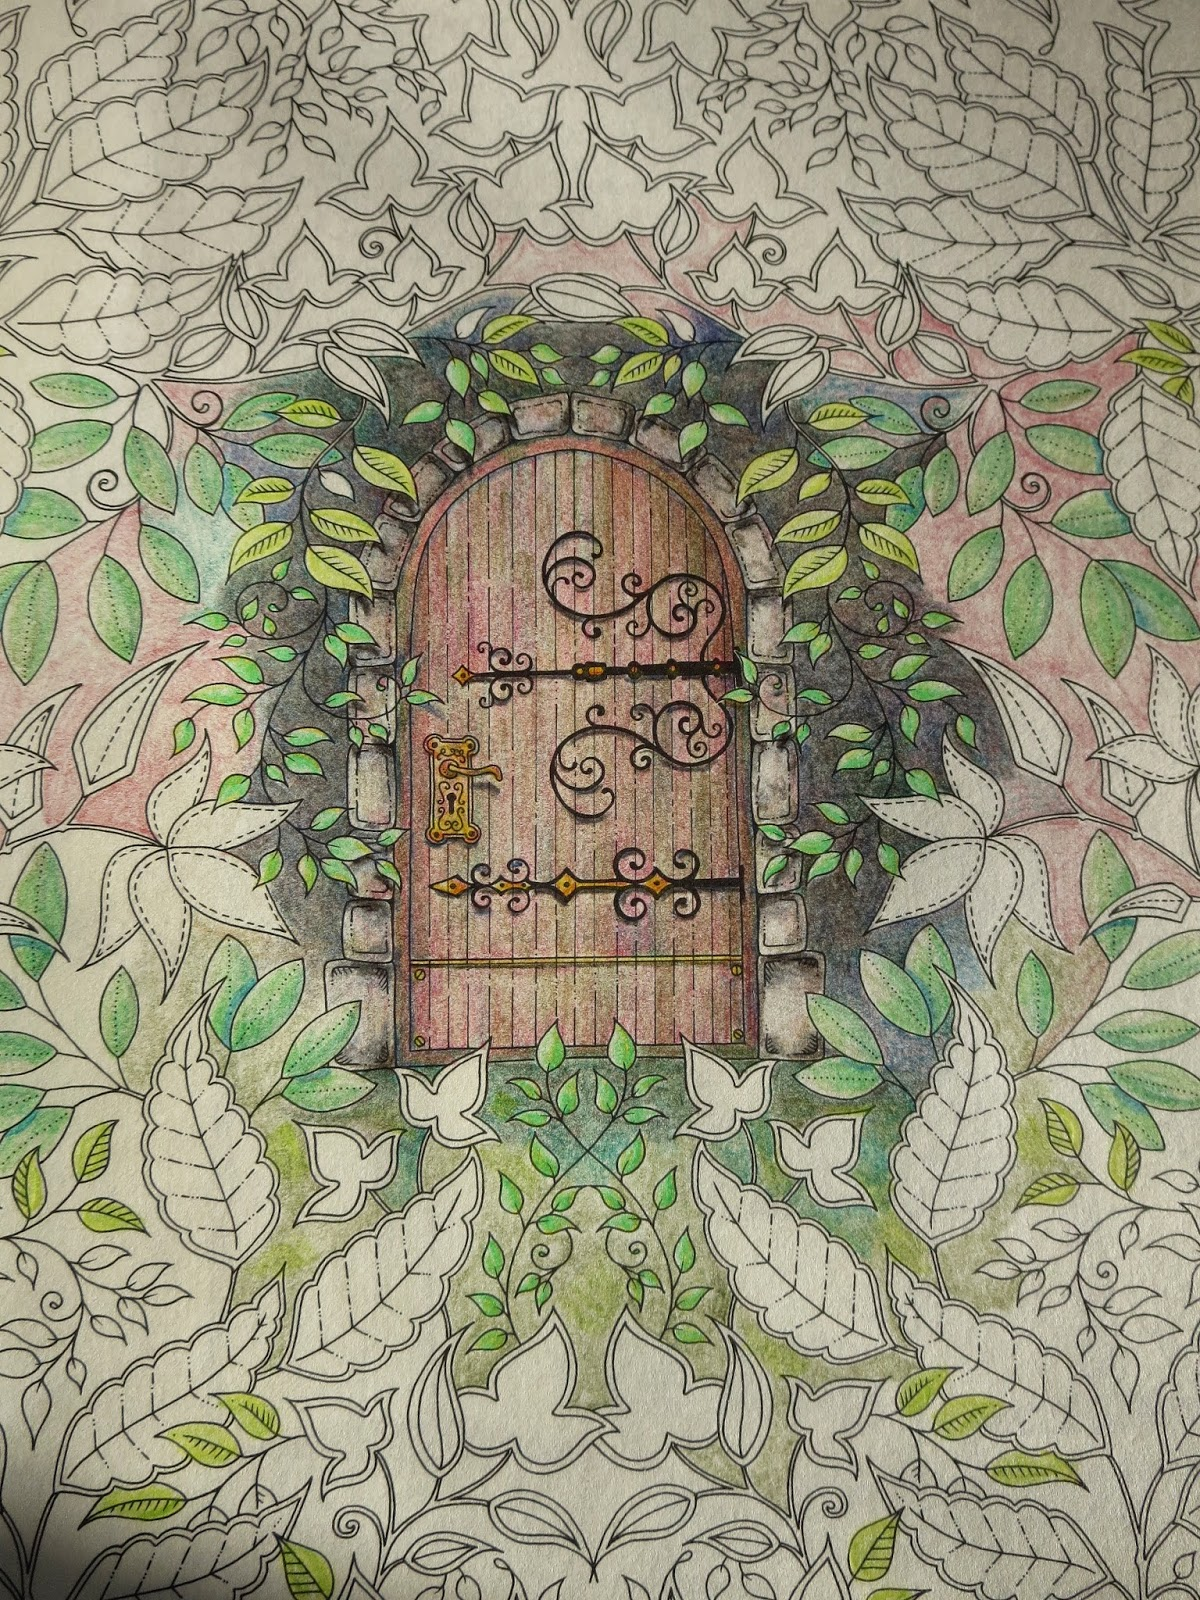 Secret Garden: Passion For Pencils: My Secret Garden Colouring Book, Part 3